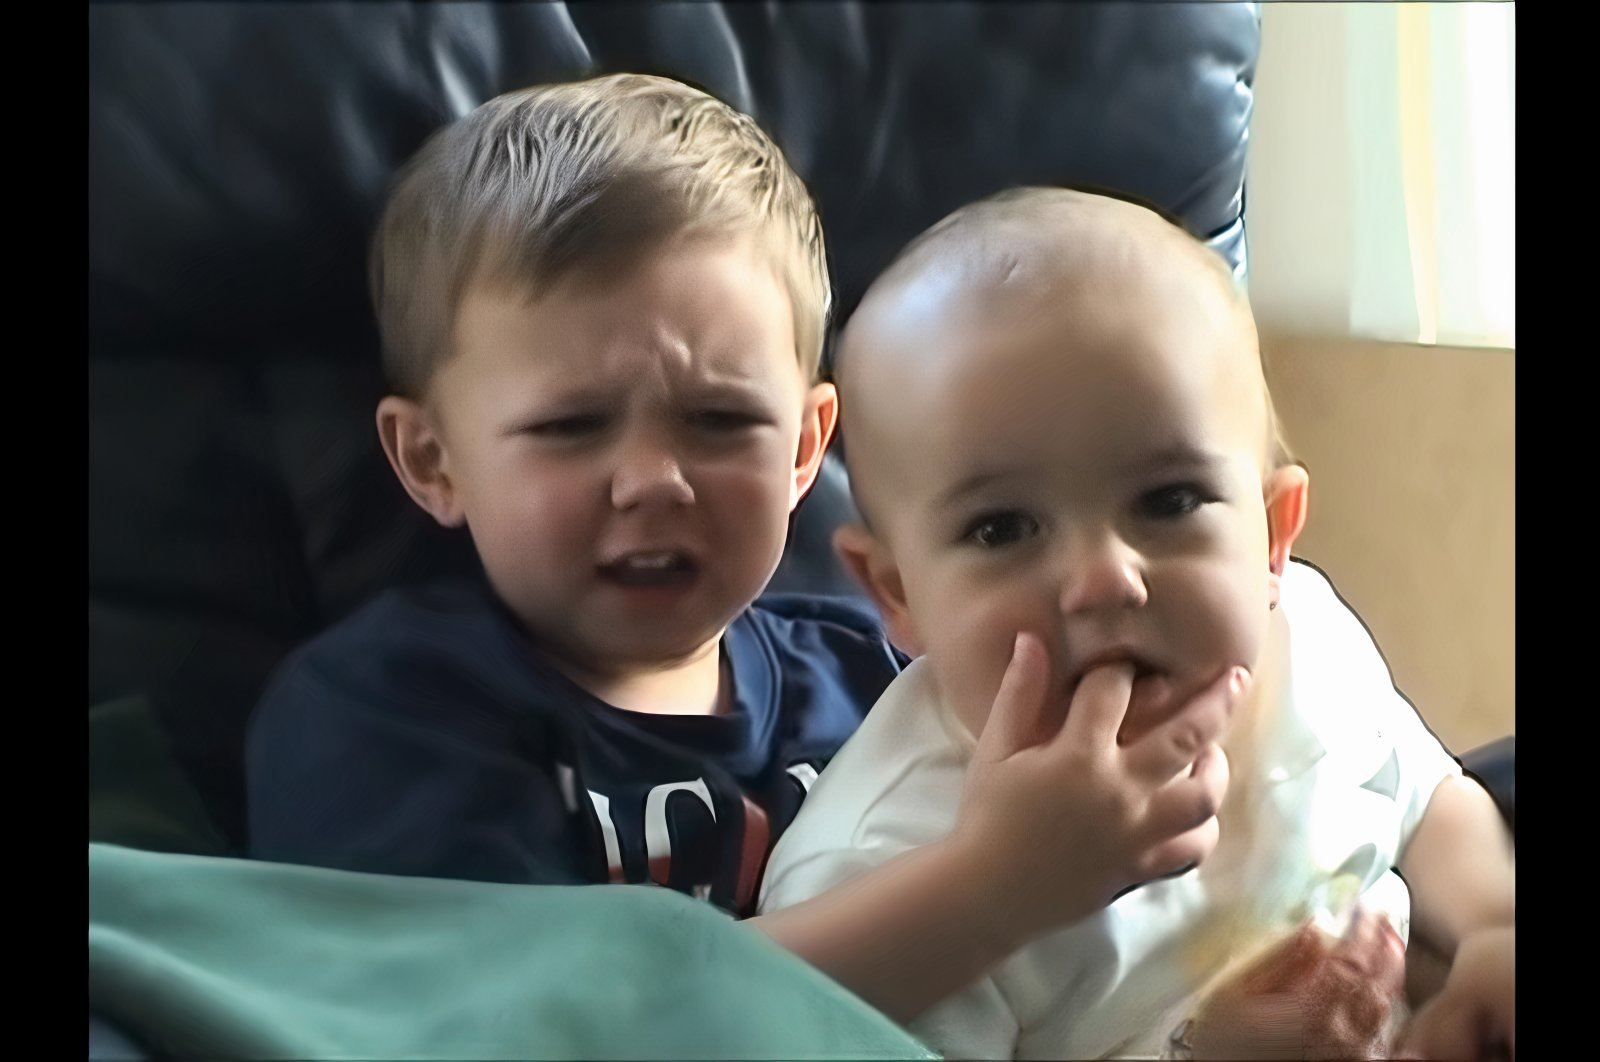 """Charlie, 1, bites the finger of his older brother Harry, 3, as seen from the screenshot of a homevideo uploaded to the social media platform YouTube by the channel """"HDCYT"""" on May 22, 2007. (Courtesy of YouTube's HDCYT)"""